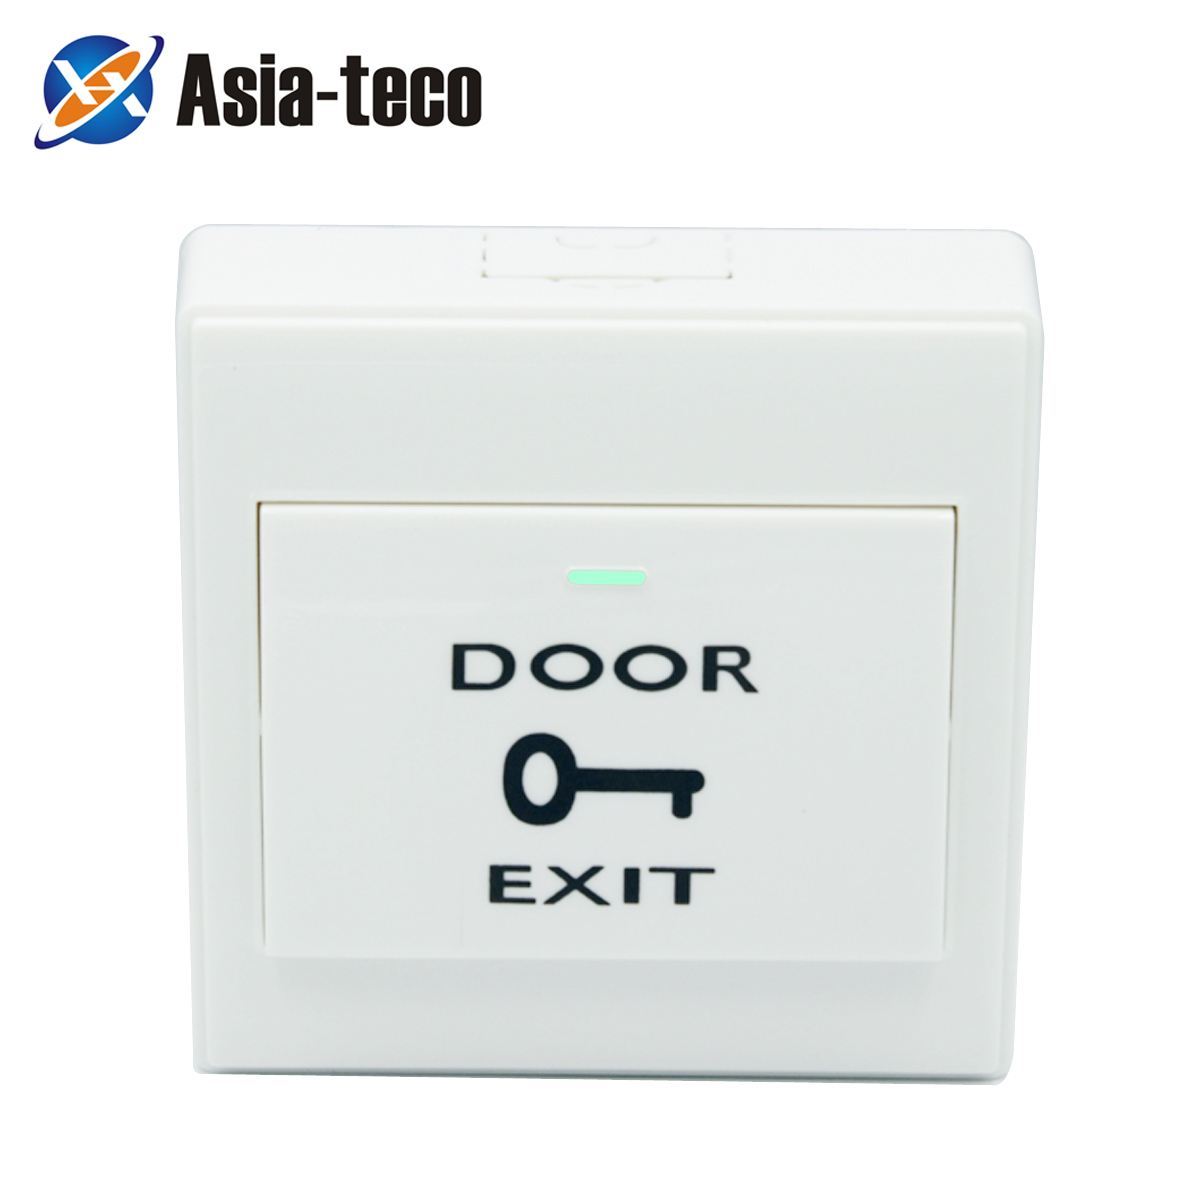 86*86mm DC 12V Push Exit Release Button Switch With Button Box For Door Access Control System Plastic Panel Button